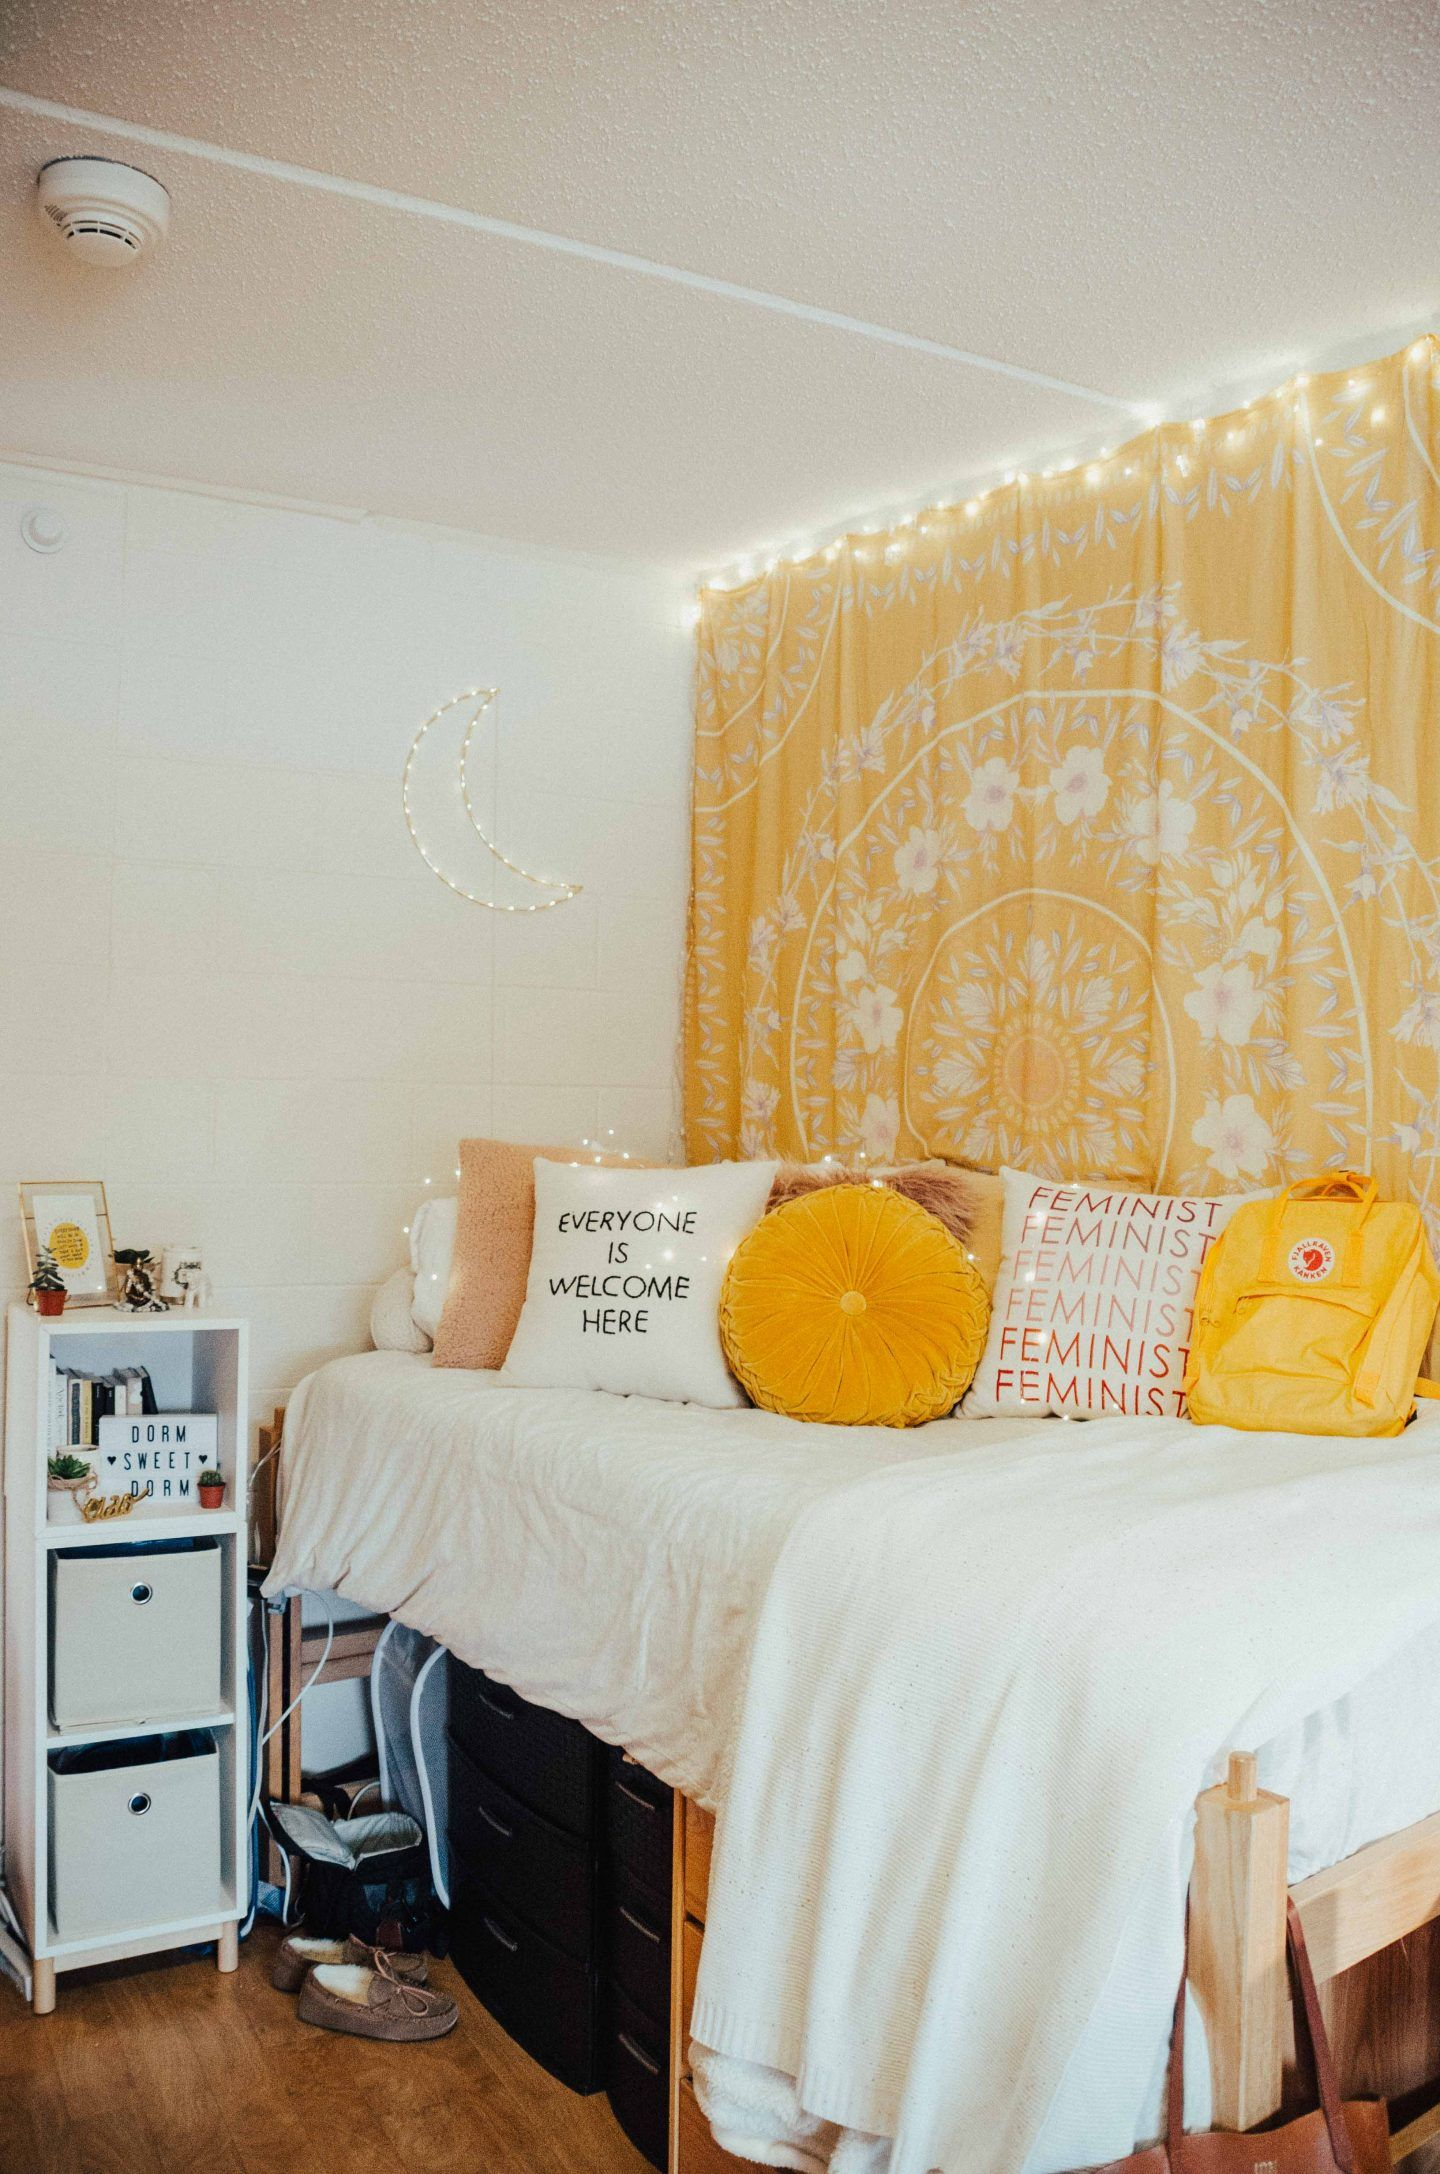 Image Result For Yellow Dorm College Decorations Dorms Decor Bedroom Inspo